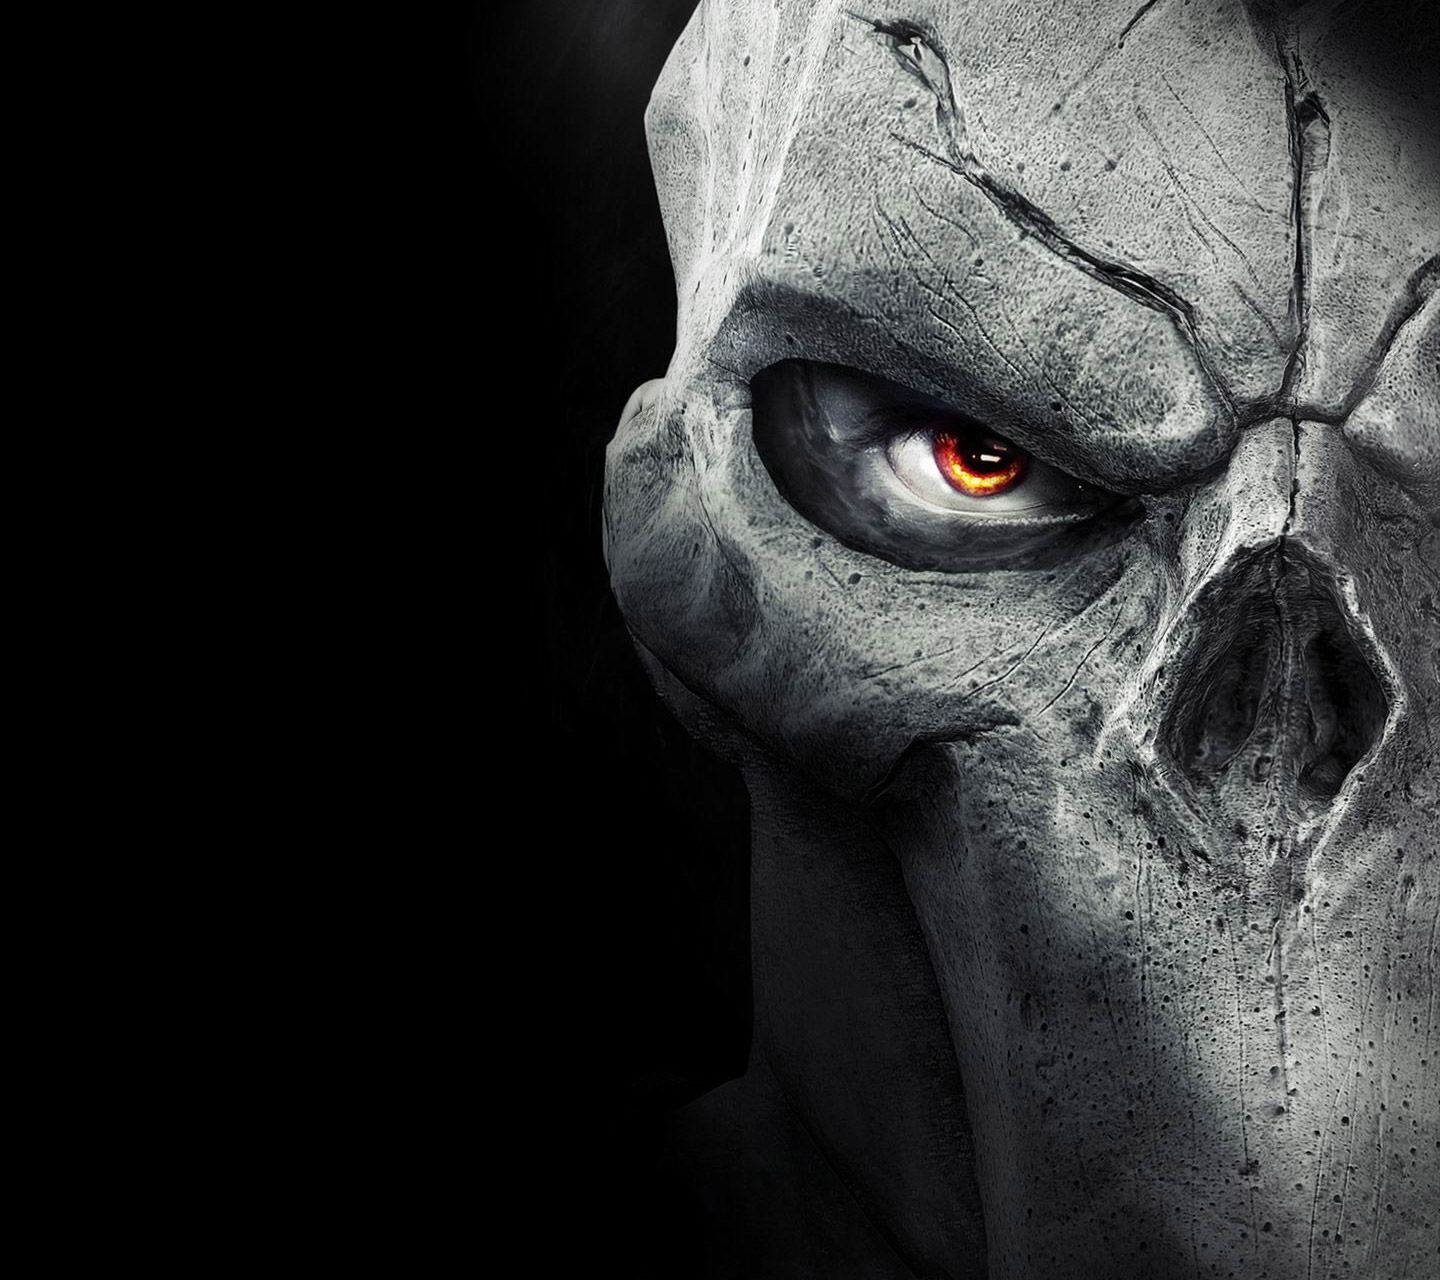 Download · Skull,1440x1280,1280x1440,free,hot,mobile phone wallpapers,www.